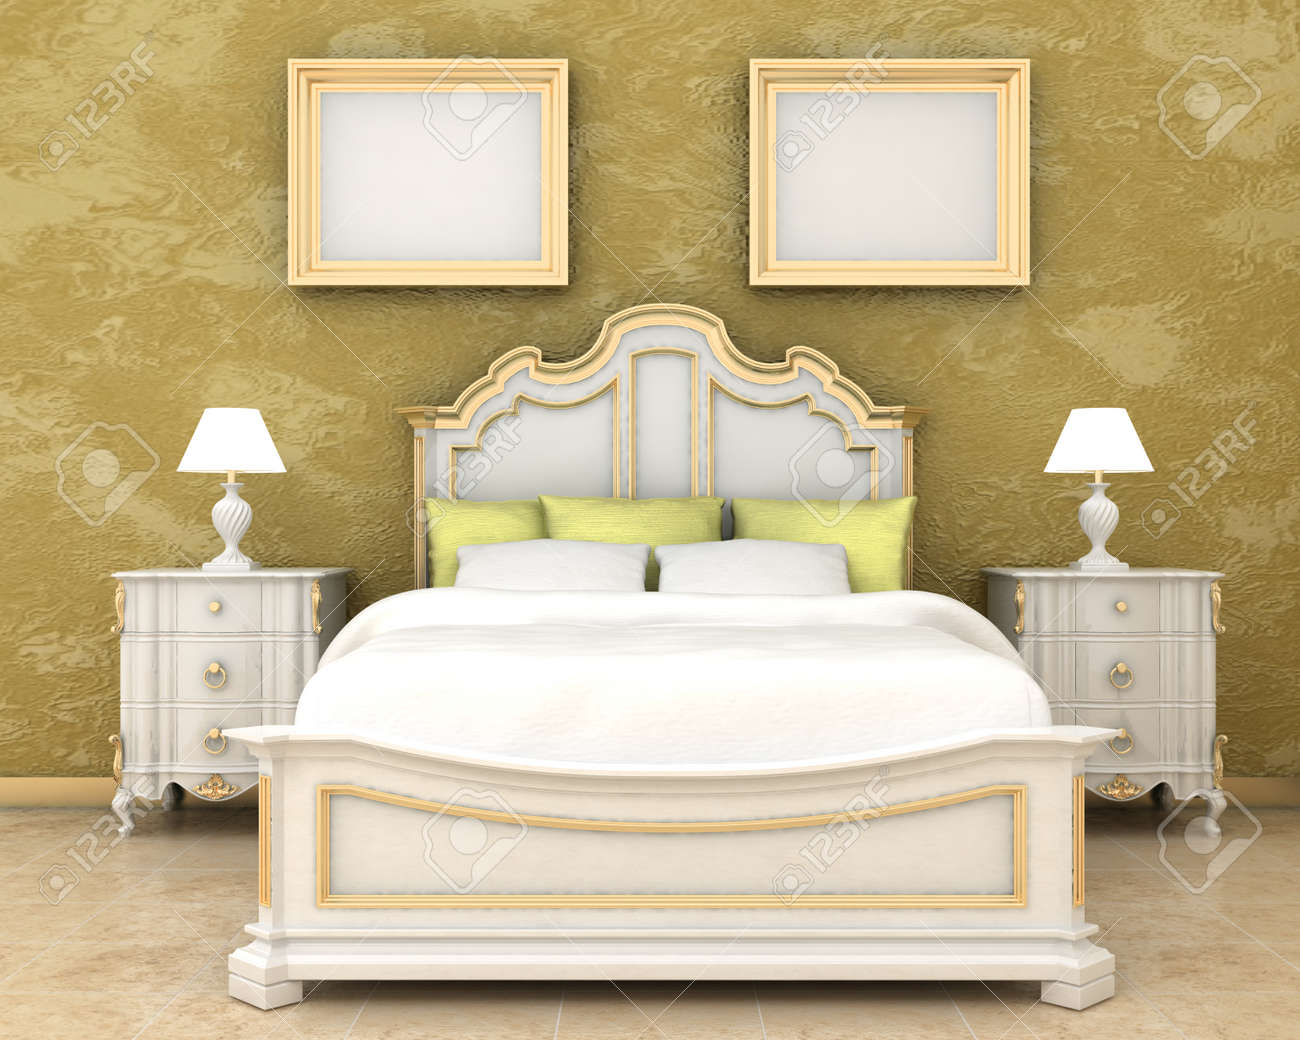 Interior Decoration Of Luxury Bedroom Bed, Night Stand And Picture ...